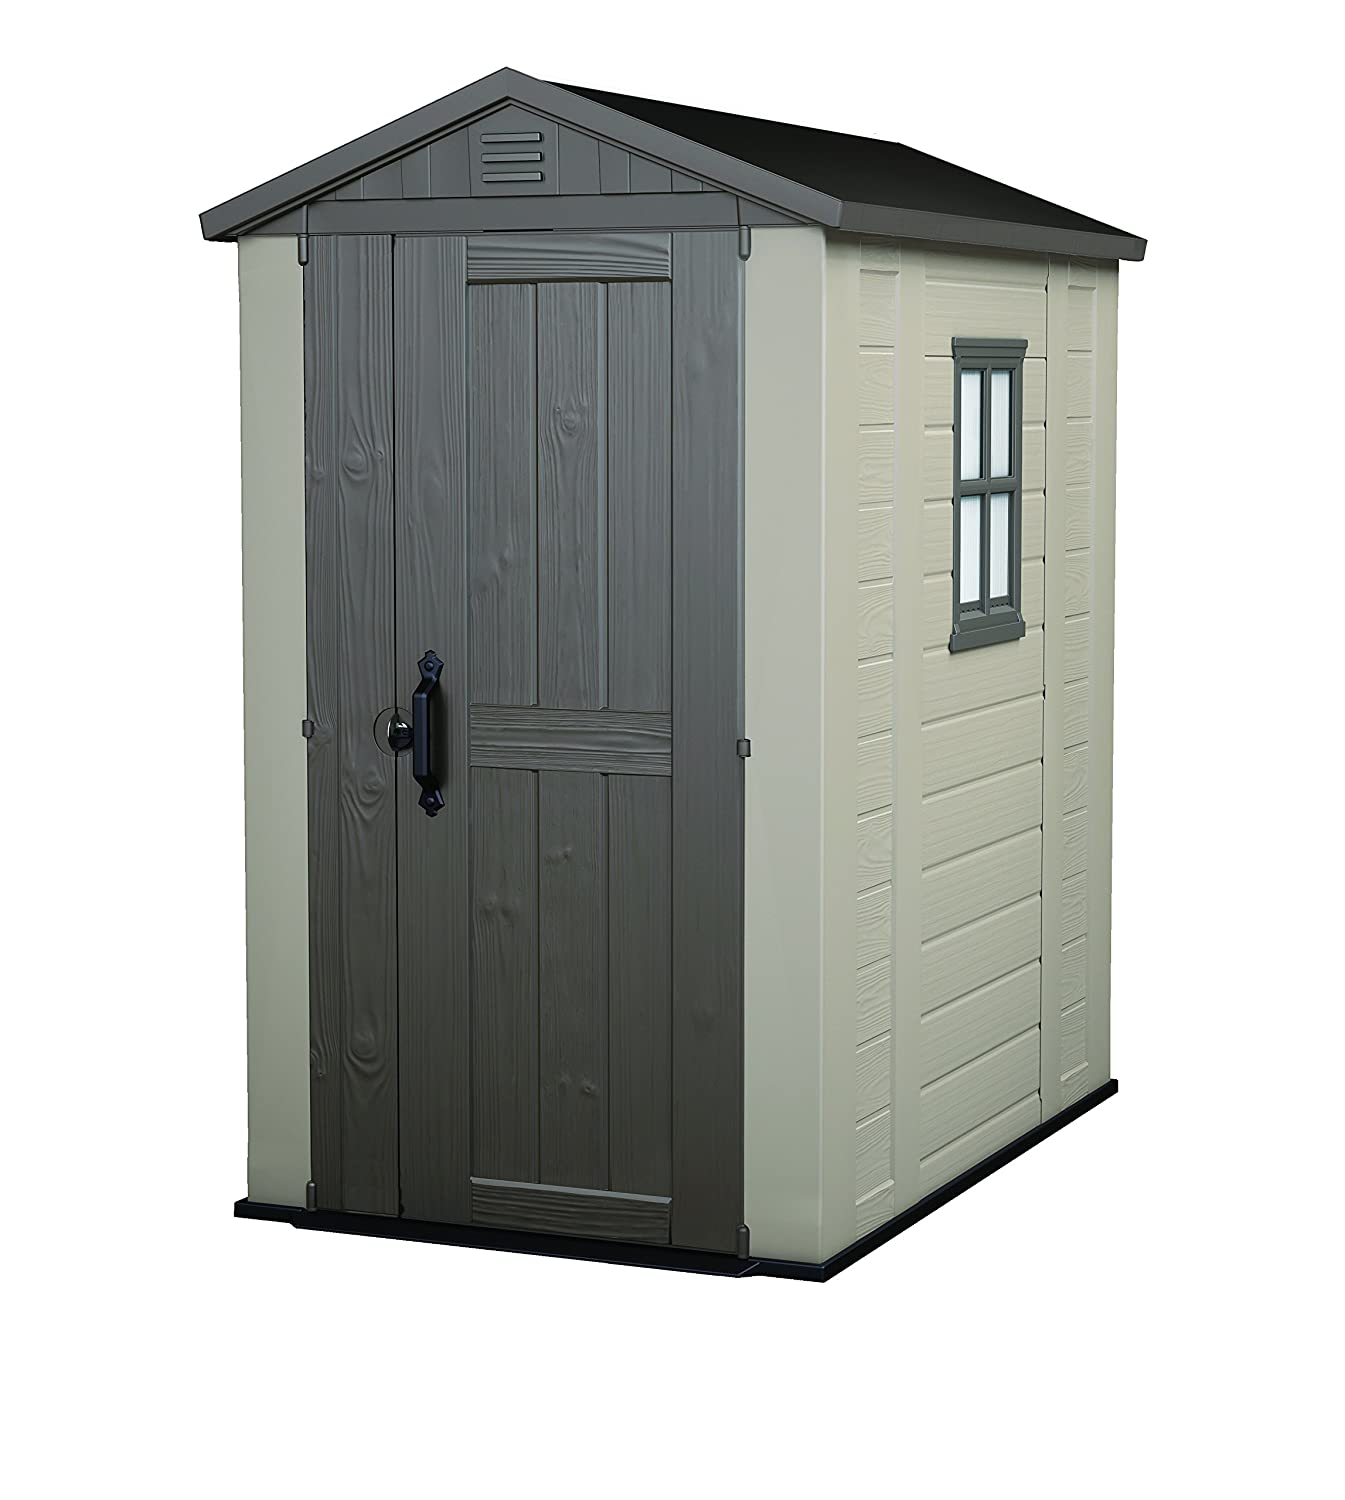 Keter Factor 4 x 6 ft Plastic Garden Shed